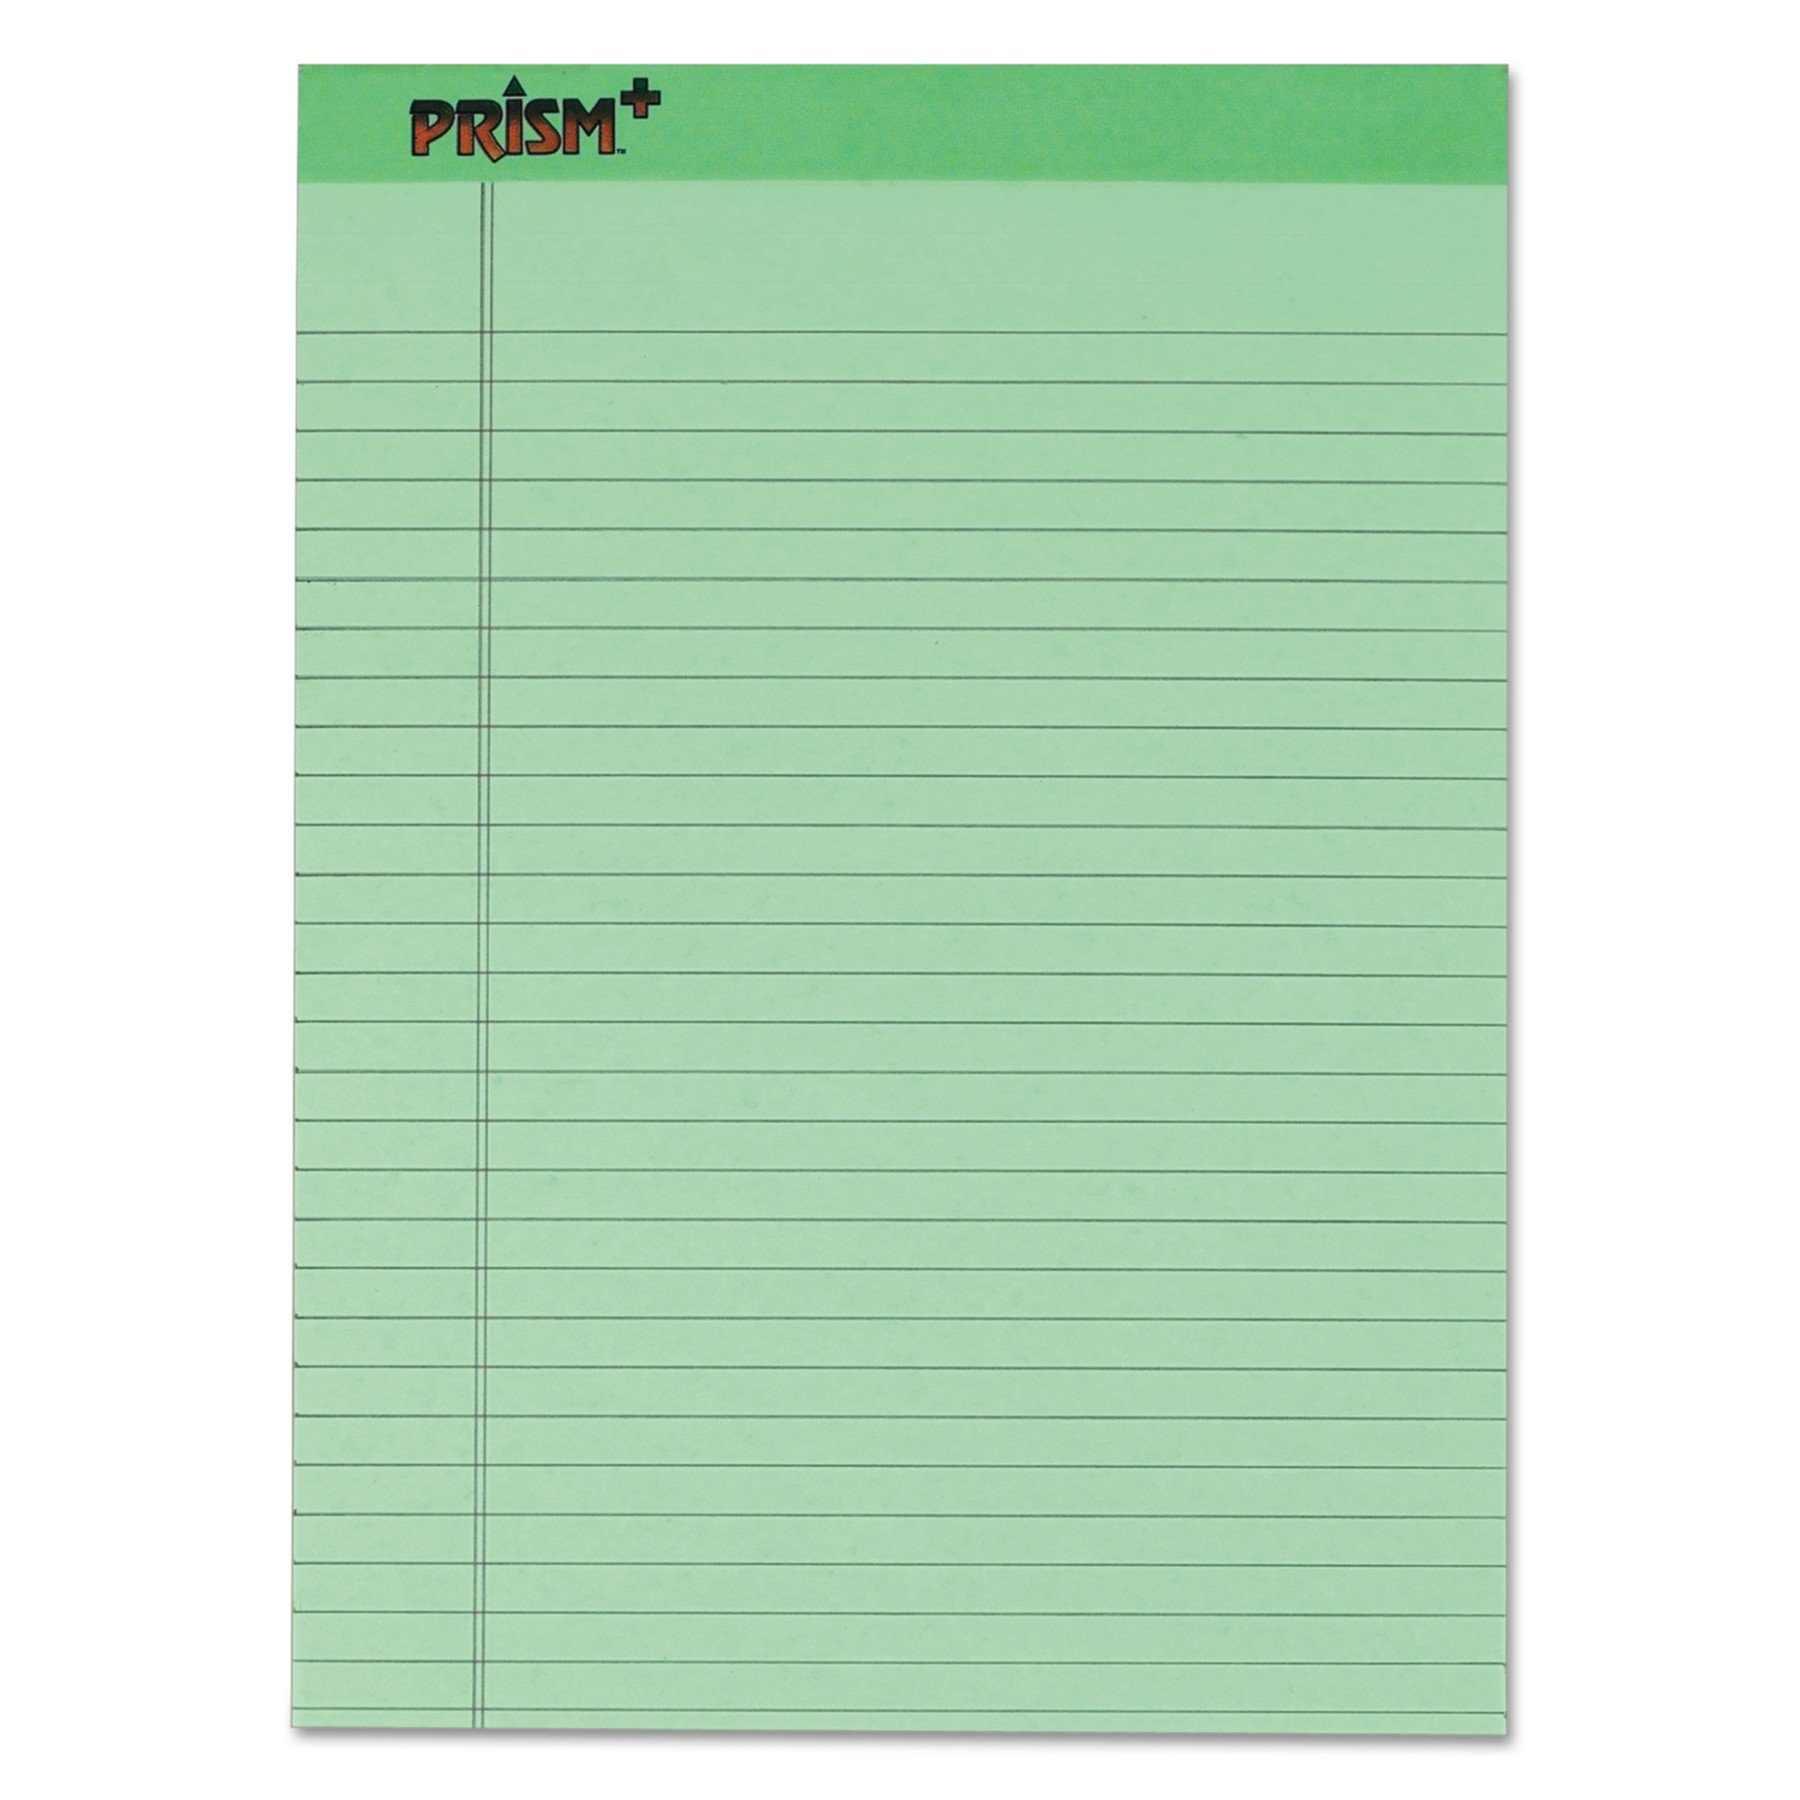 TOPS Prism Plus 100% Recycled Legal Pad, 8-1/2 x 11-3/4 Inches, Perforated, Green, Legal/Wide Rule, 50 Sheets per Pad, 12 Pads per Pack (63190)